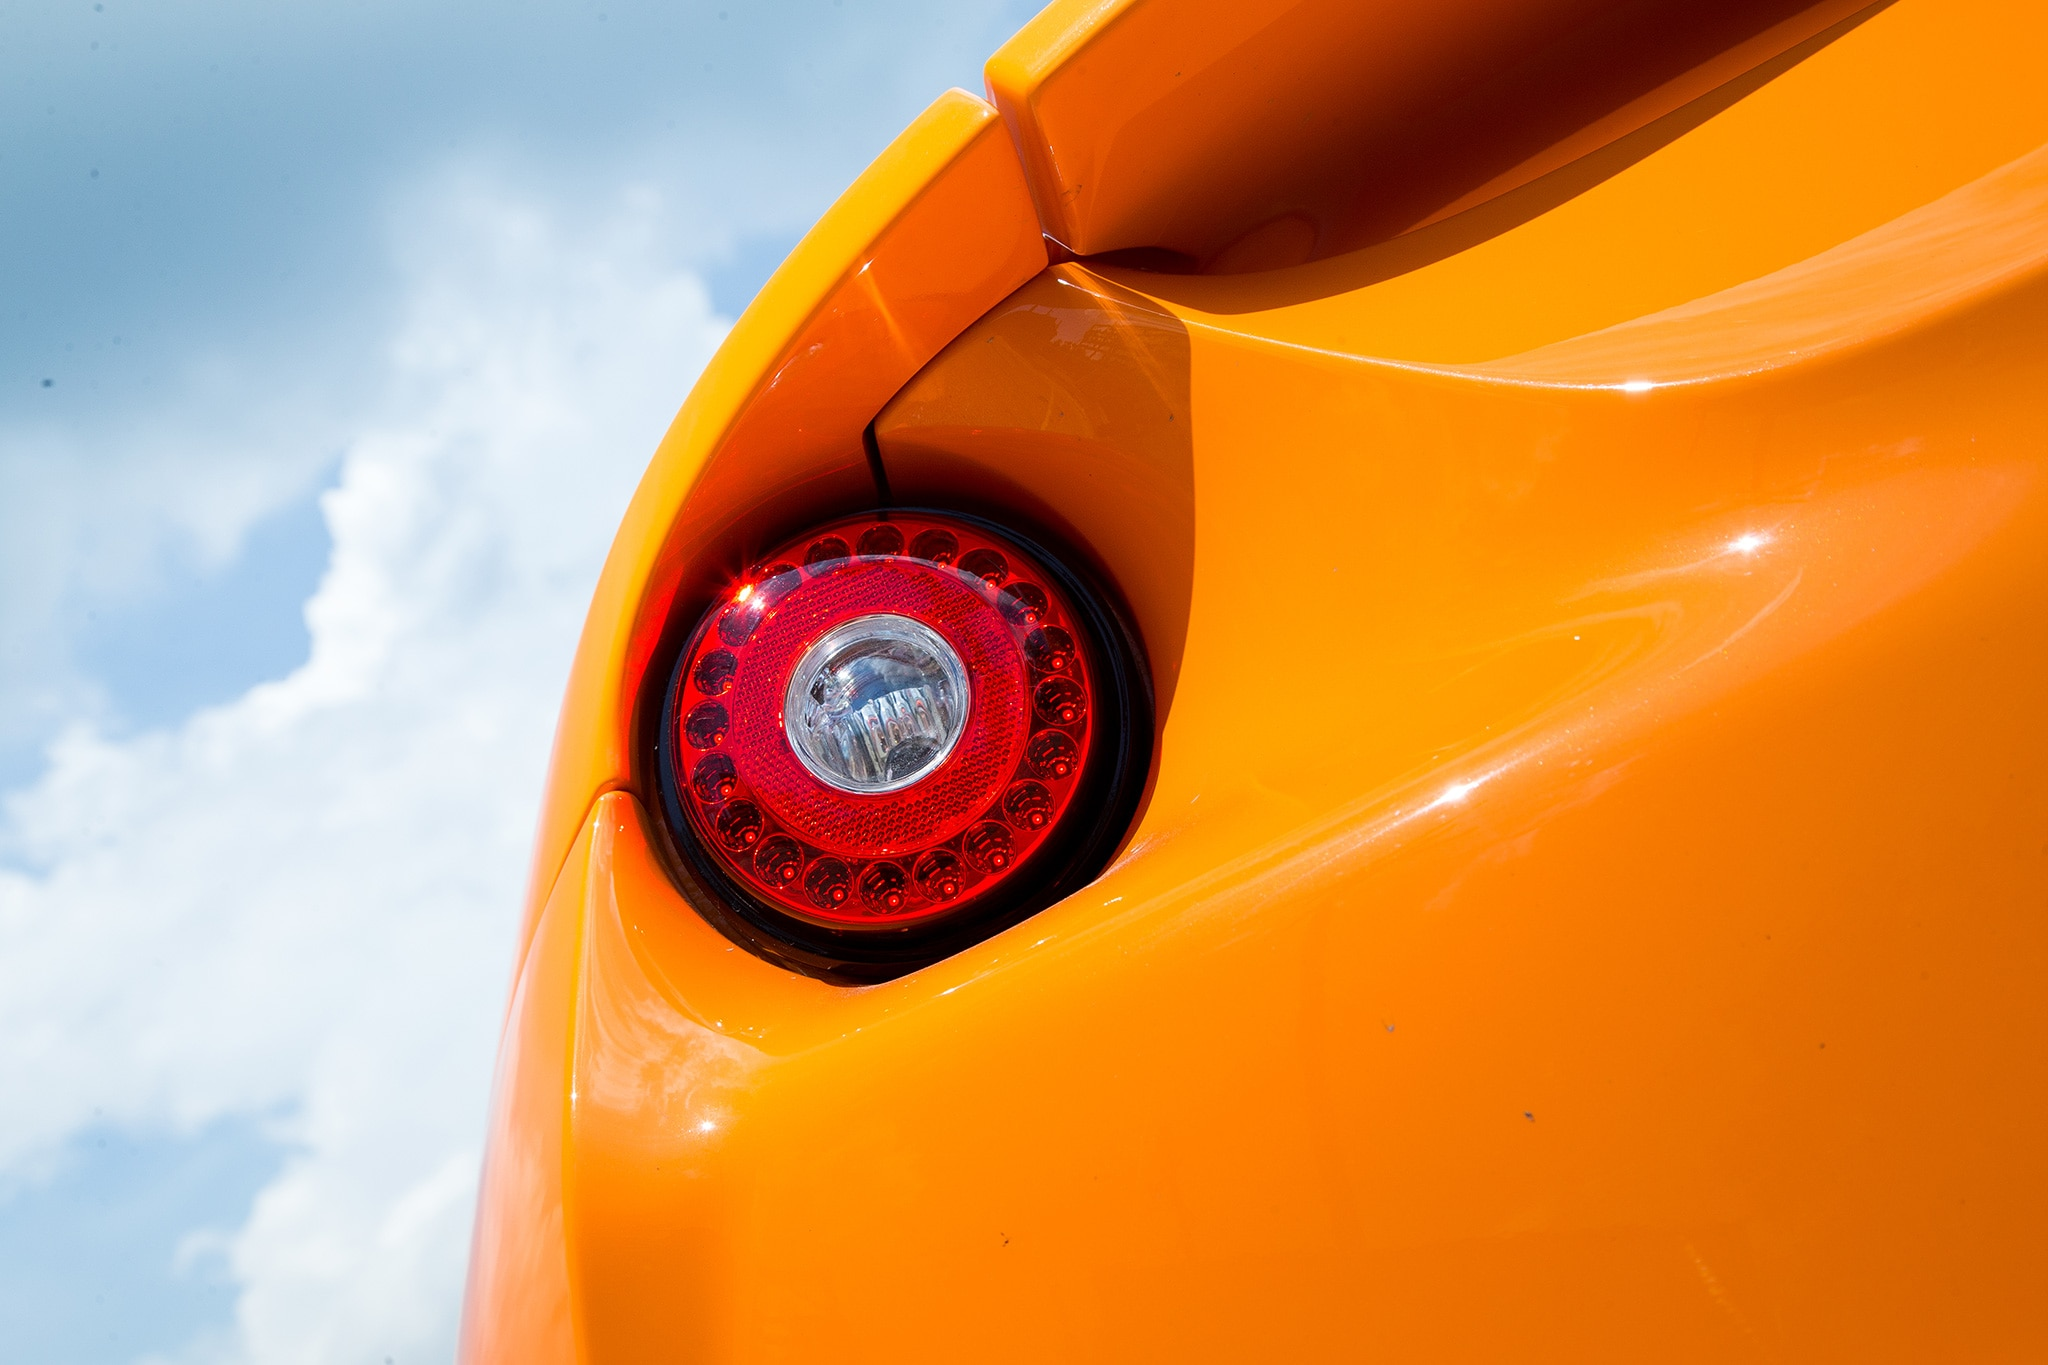 2017 Lotus Evora 400 Tail Lamp